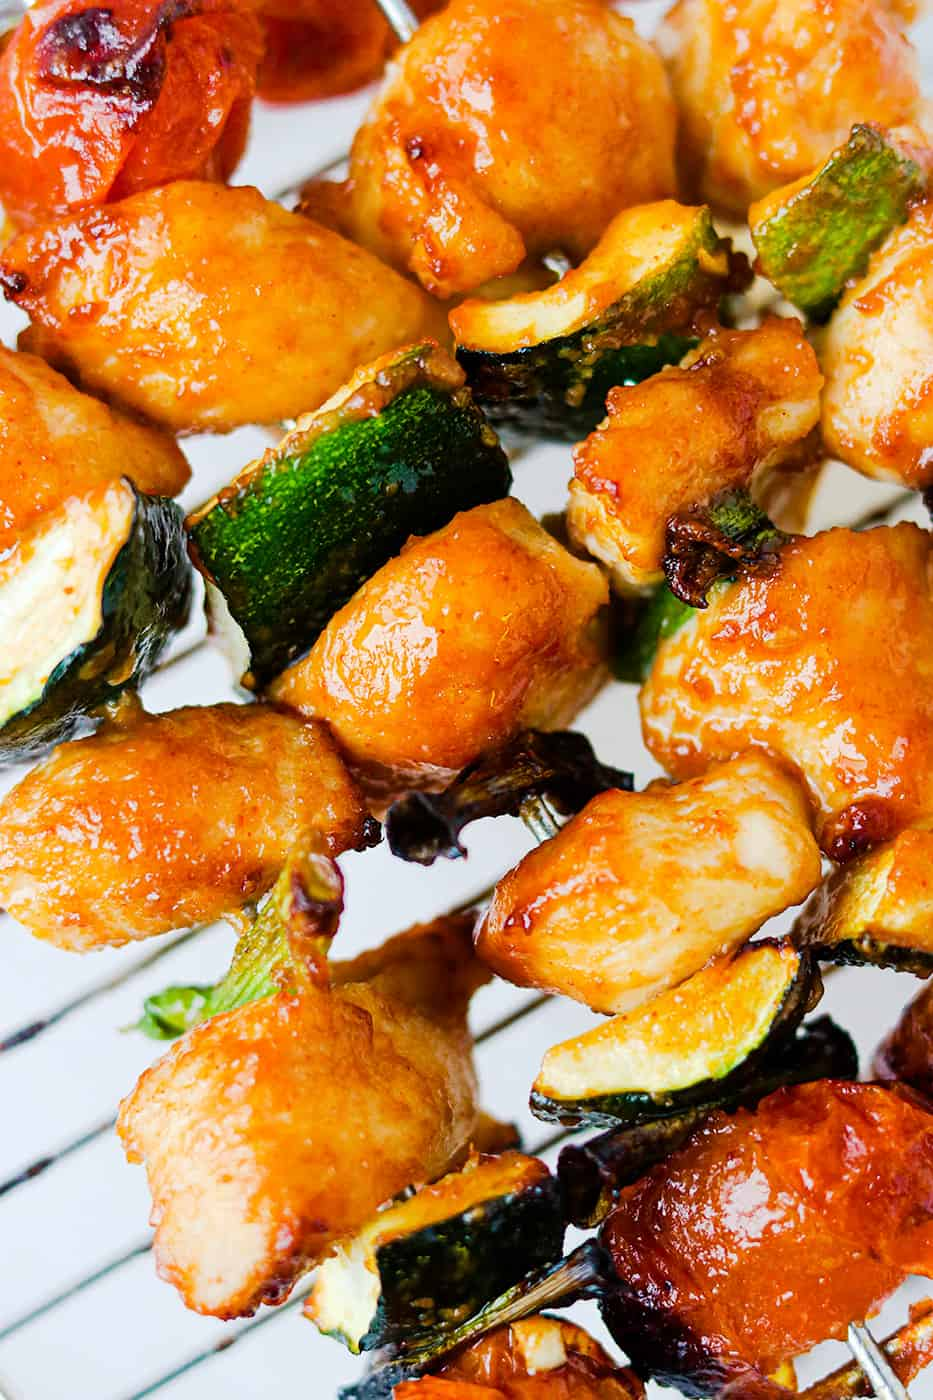 Chicken and veggies skewers